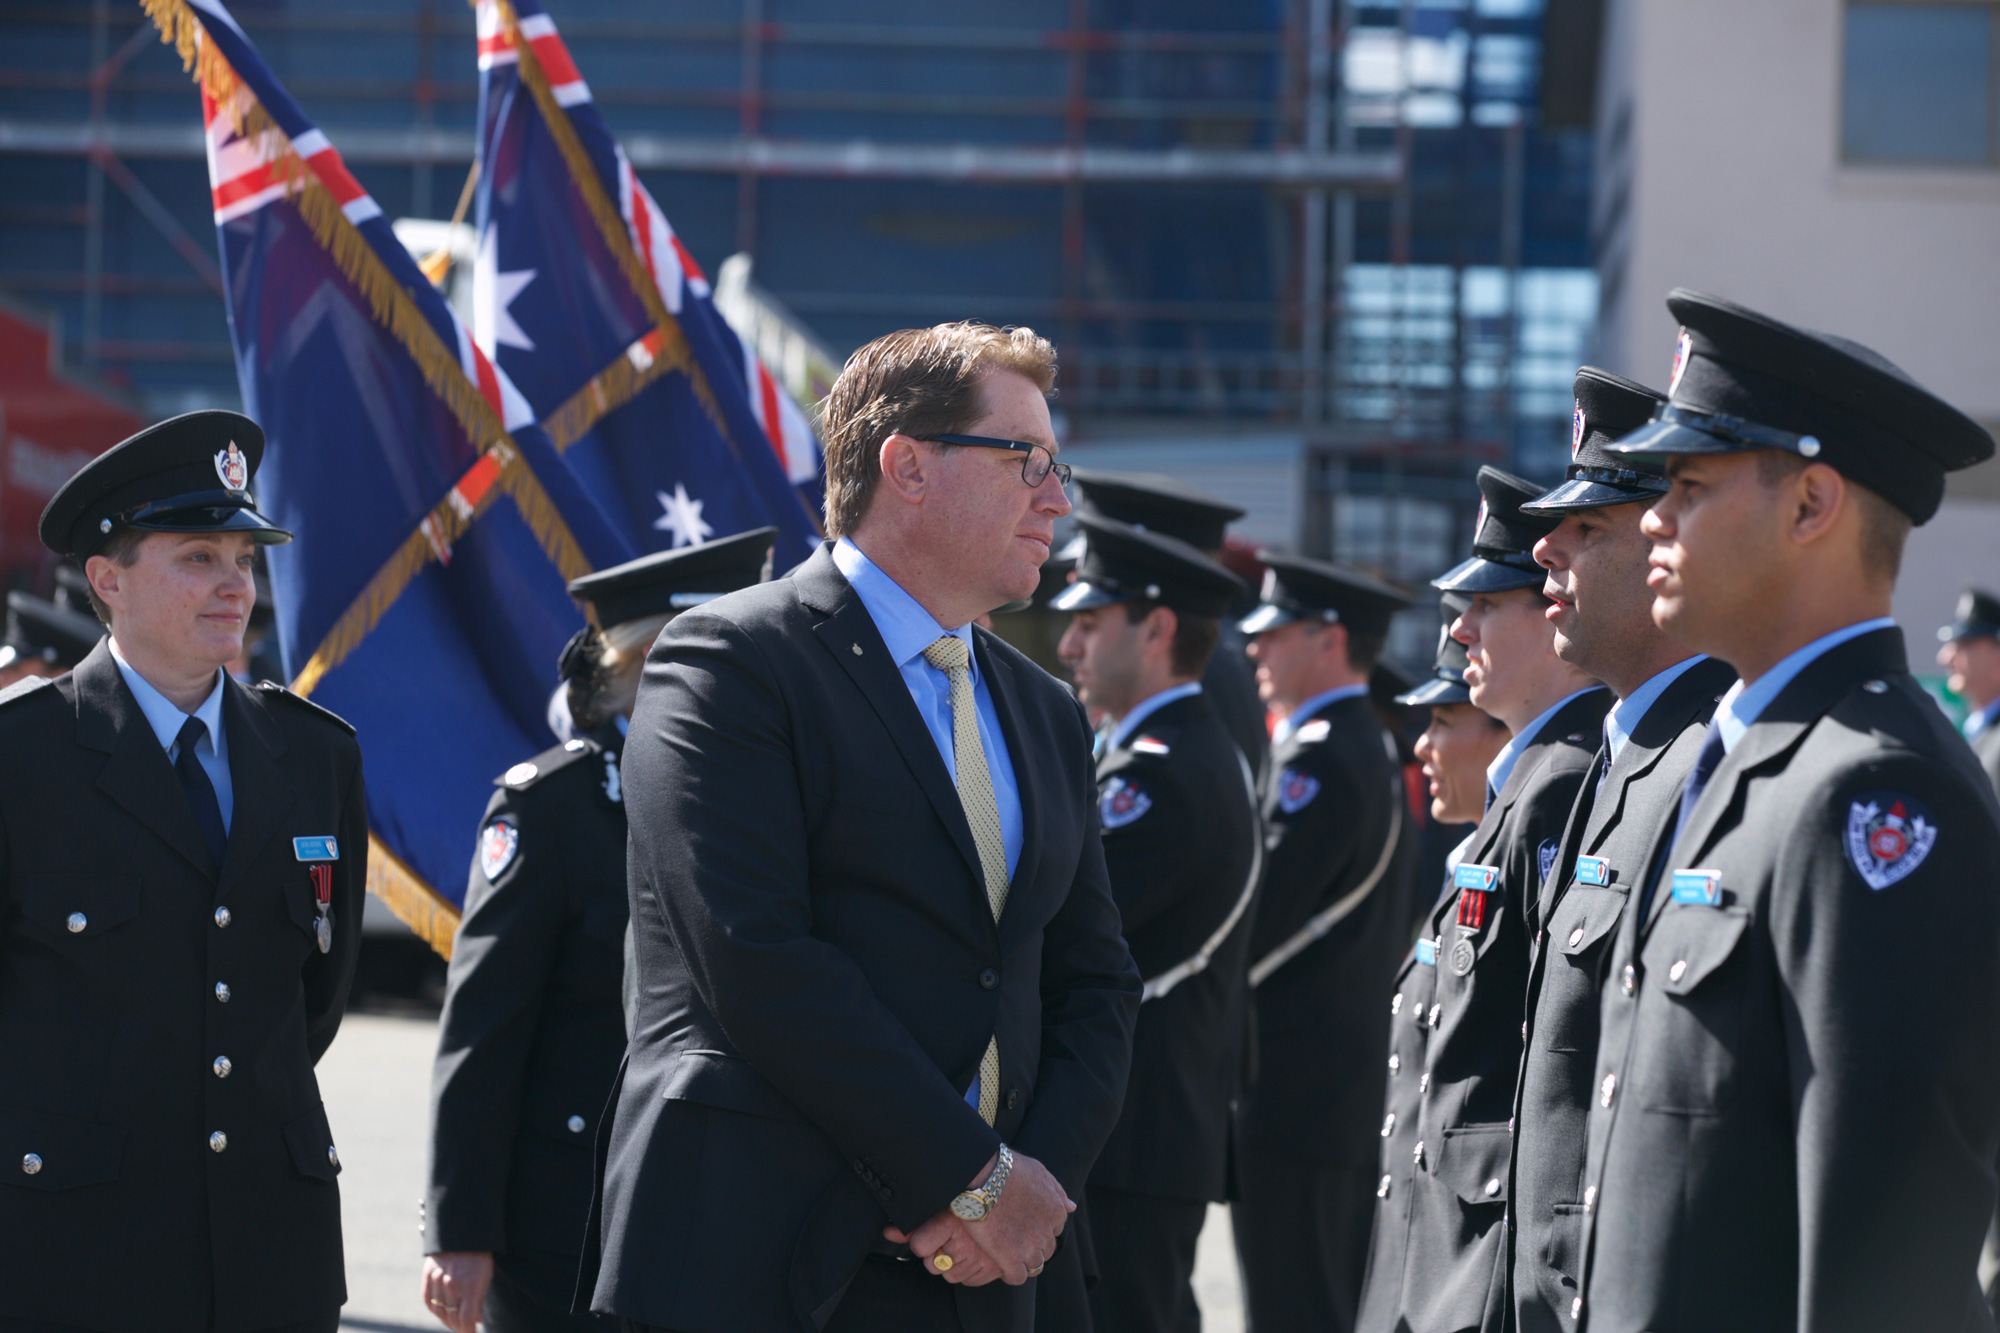 Troy-Grant-About-Police-Justice-web.jpg